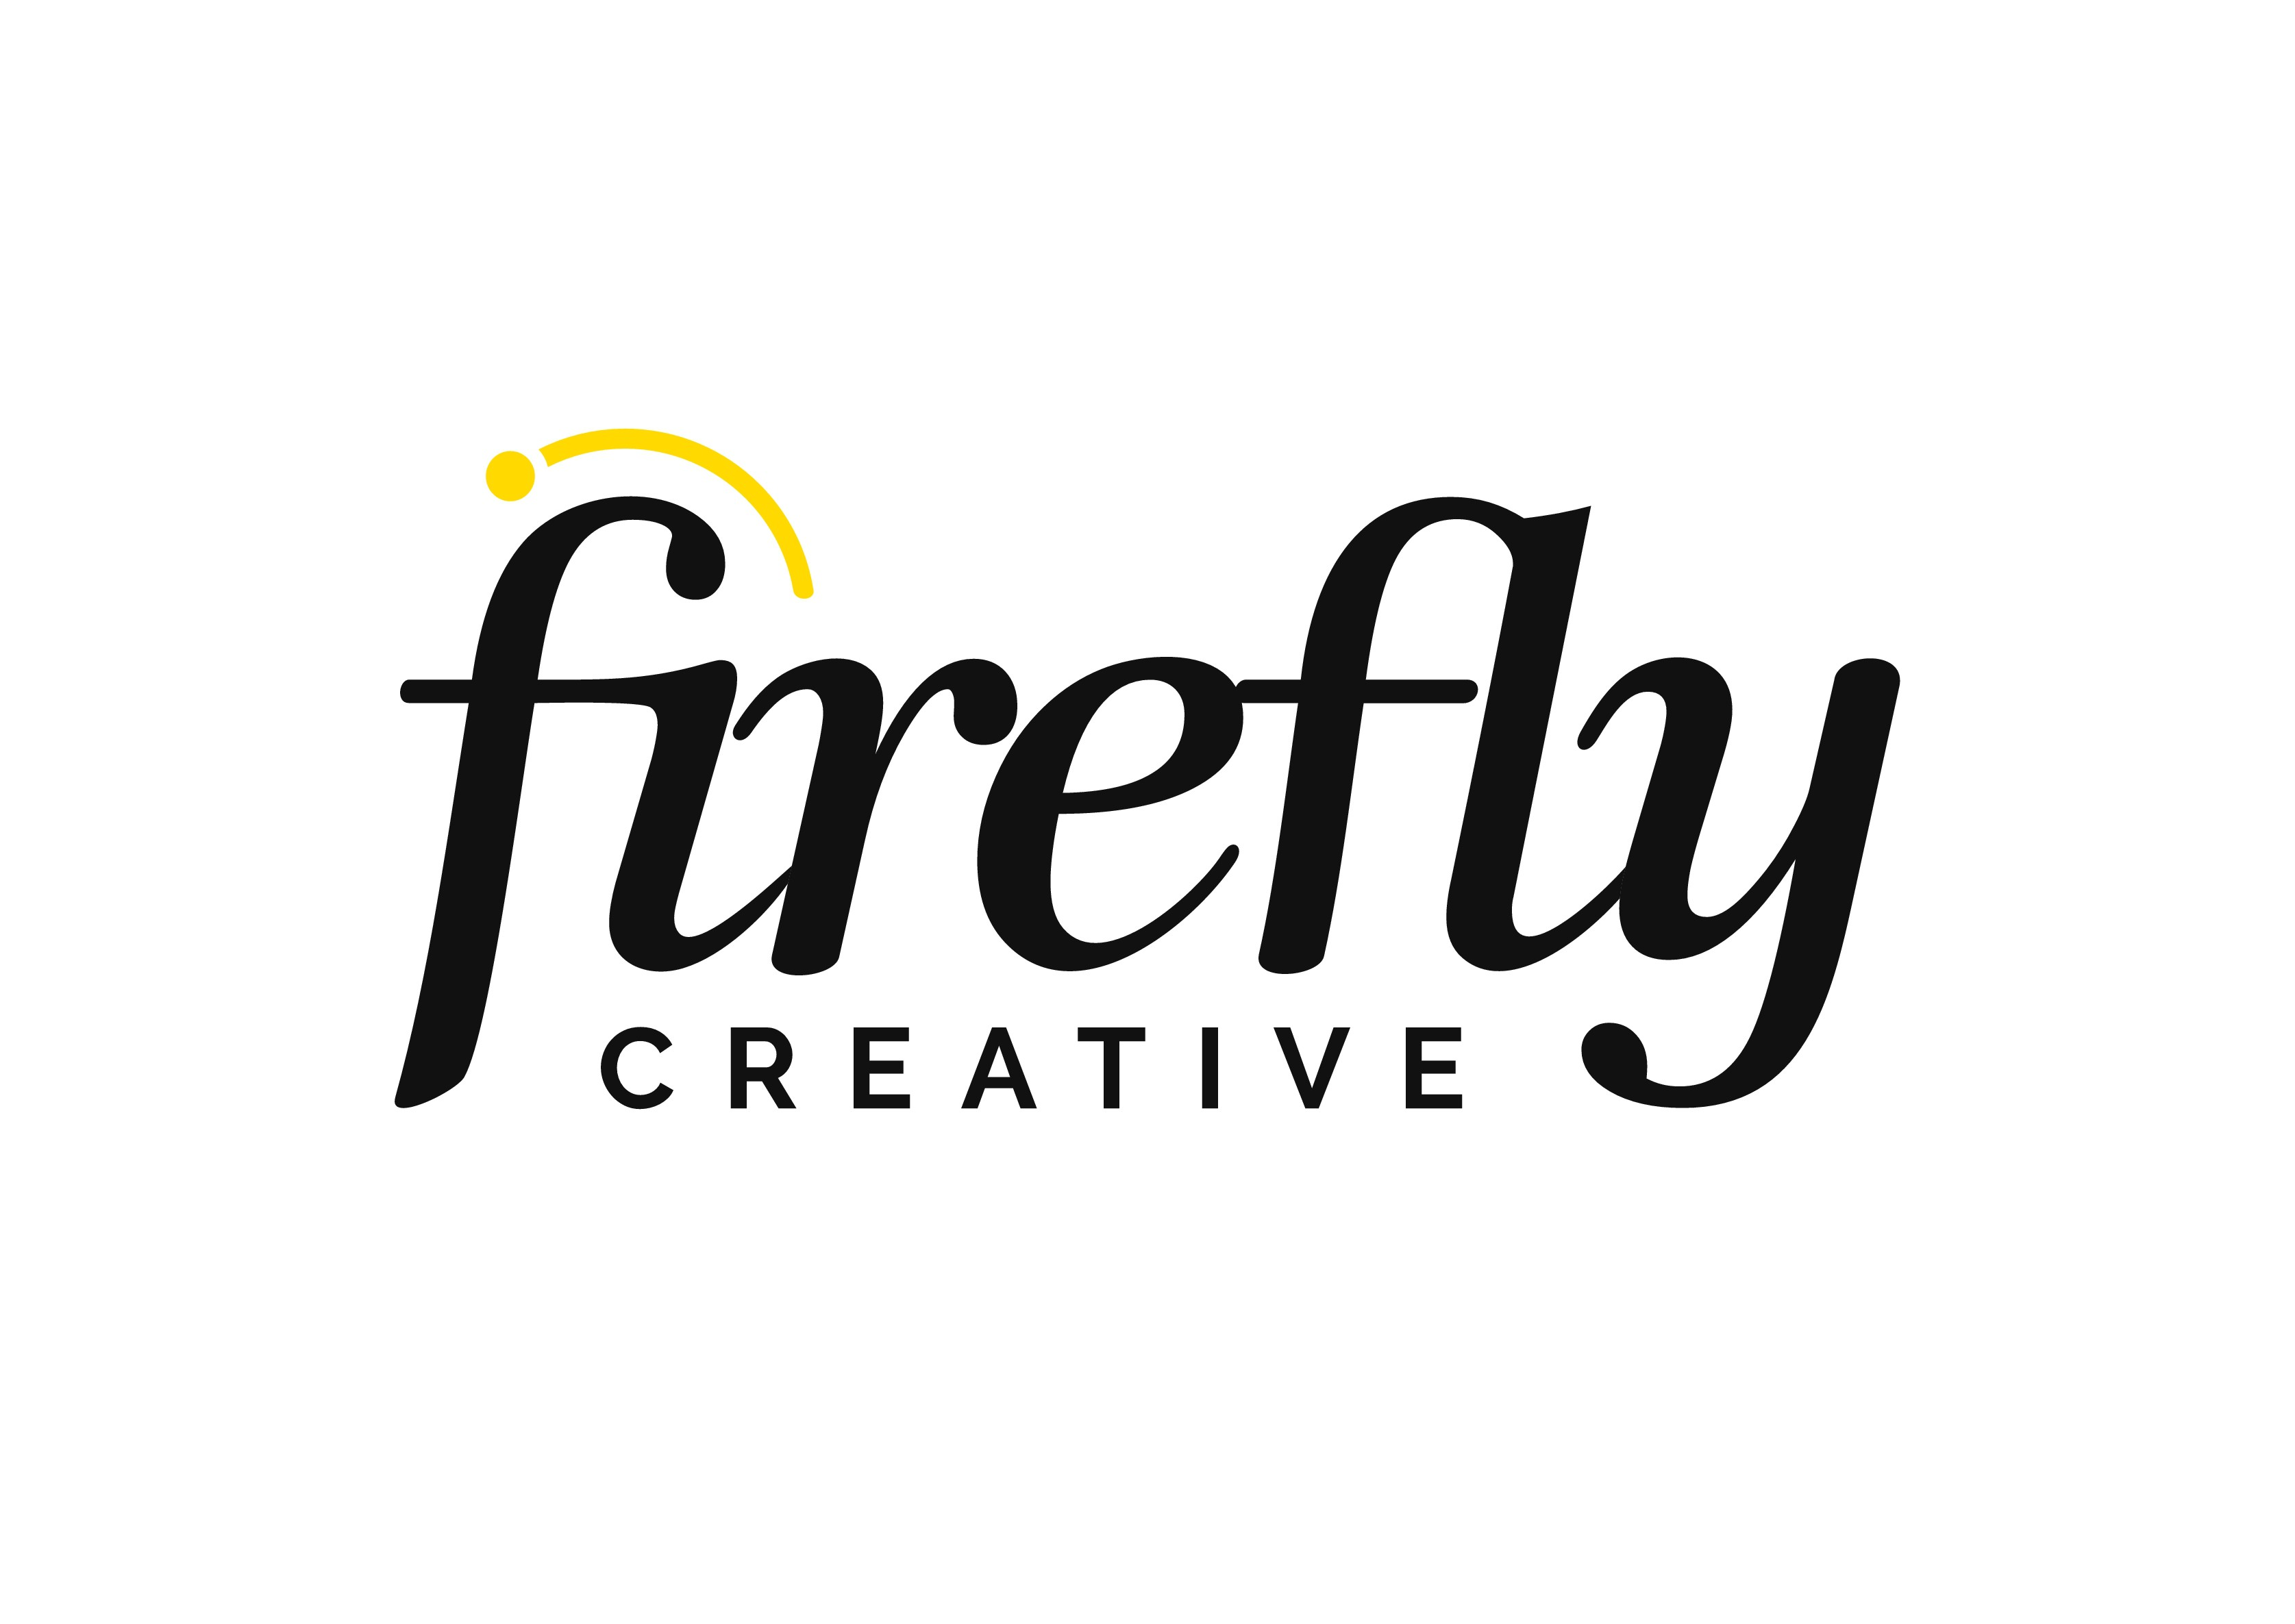 Design a custom font style logo for edgy web development company!